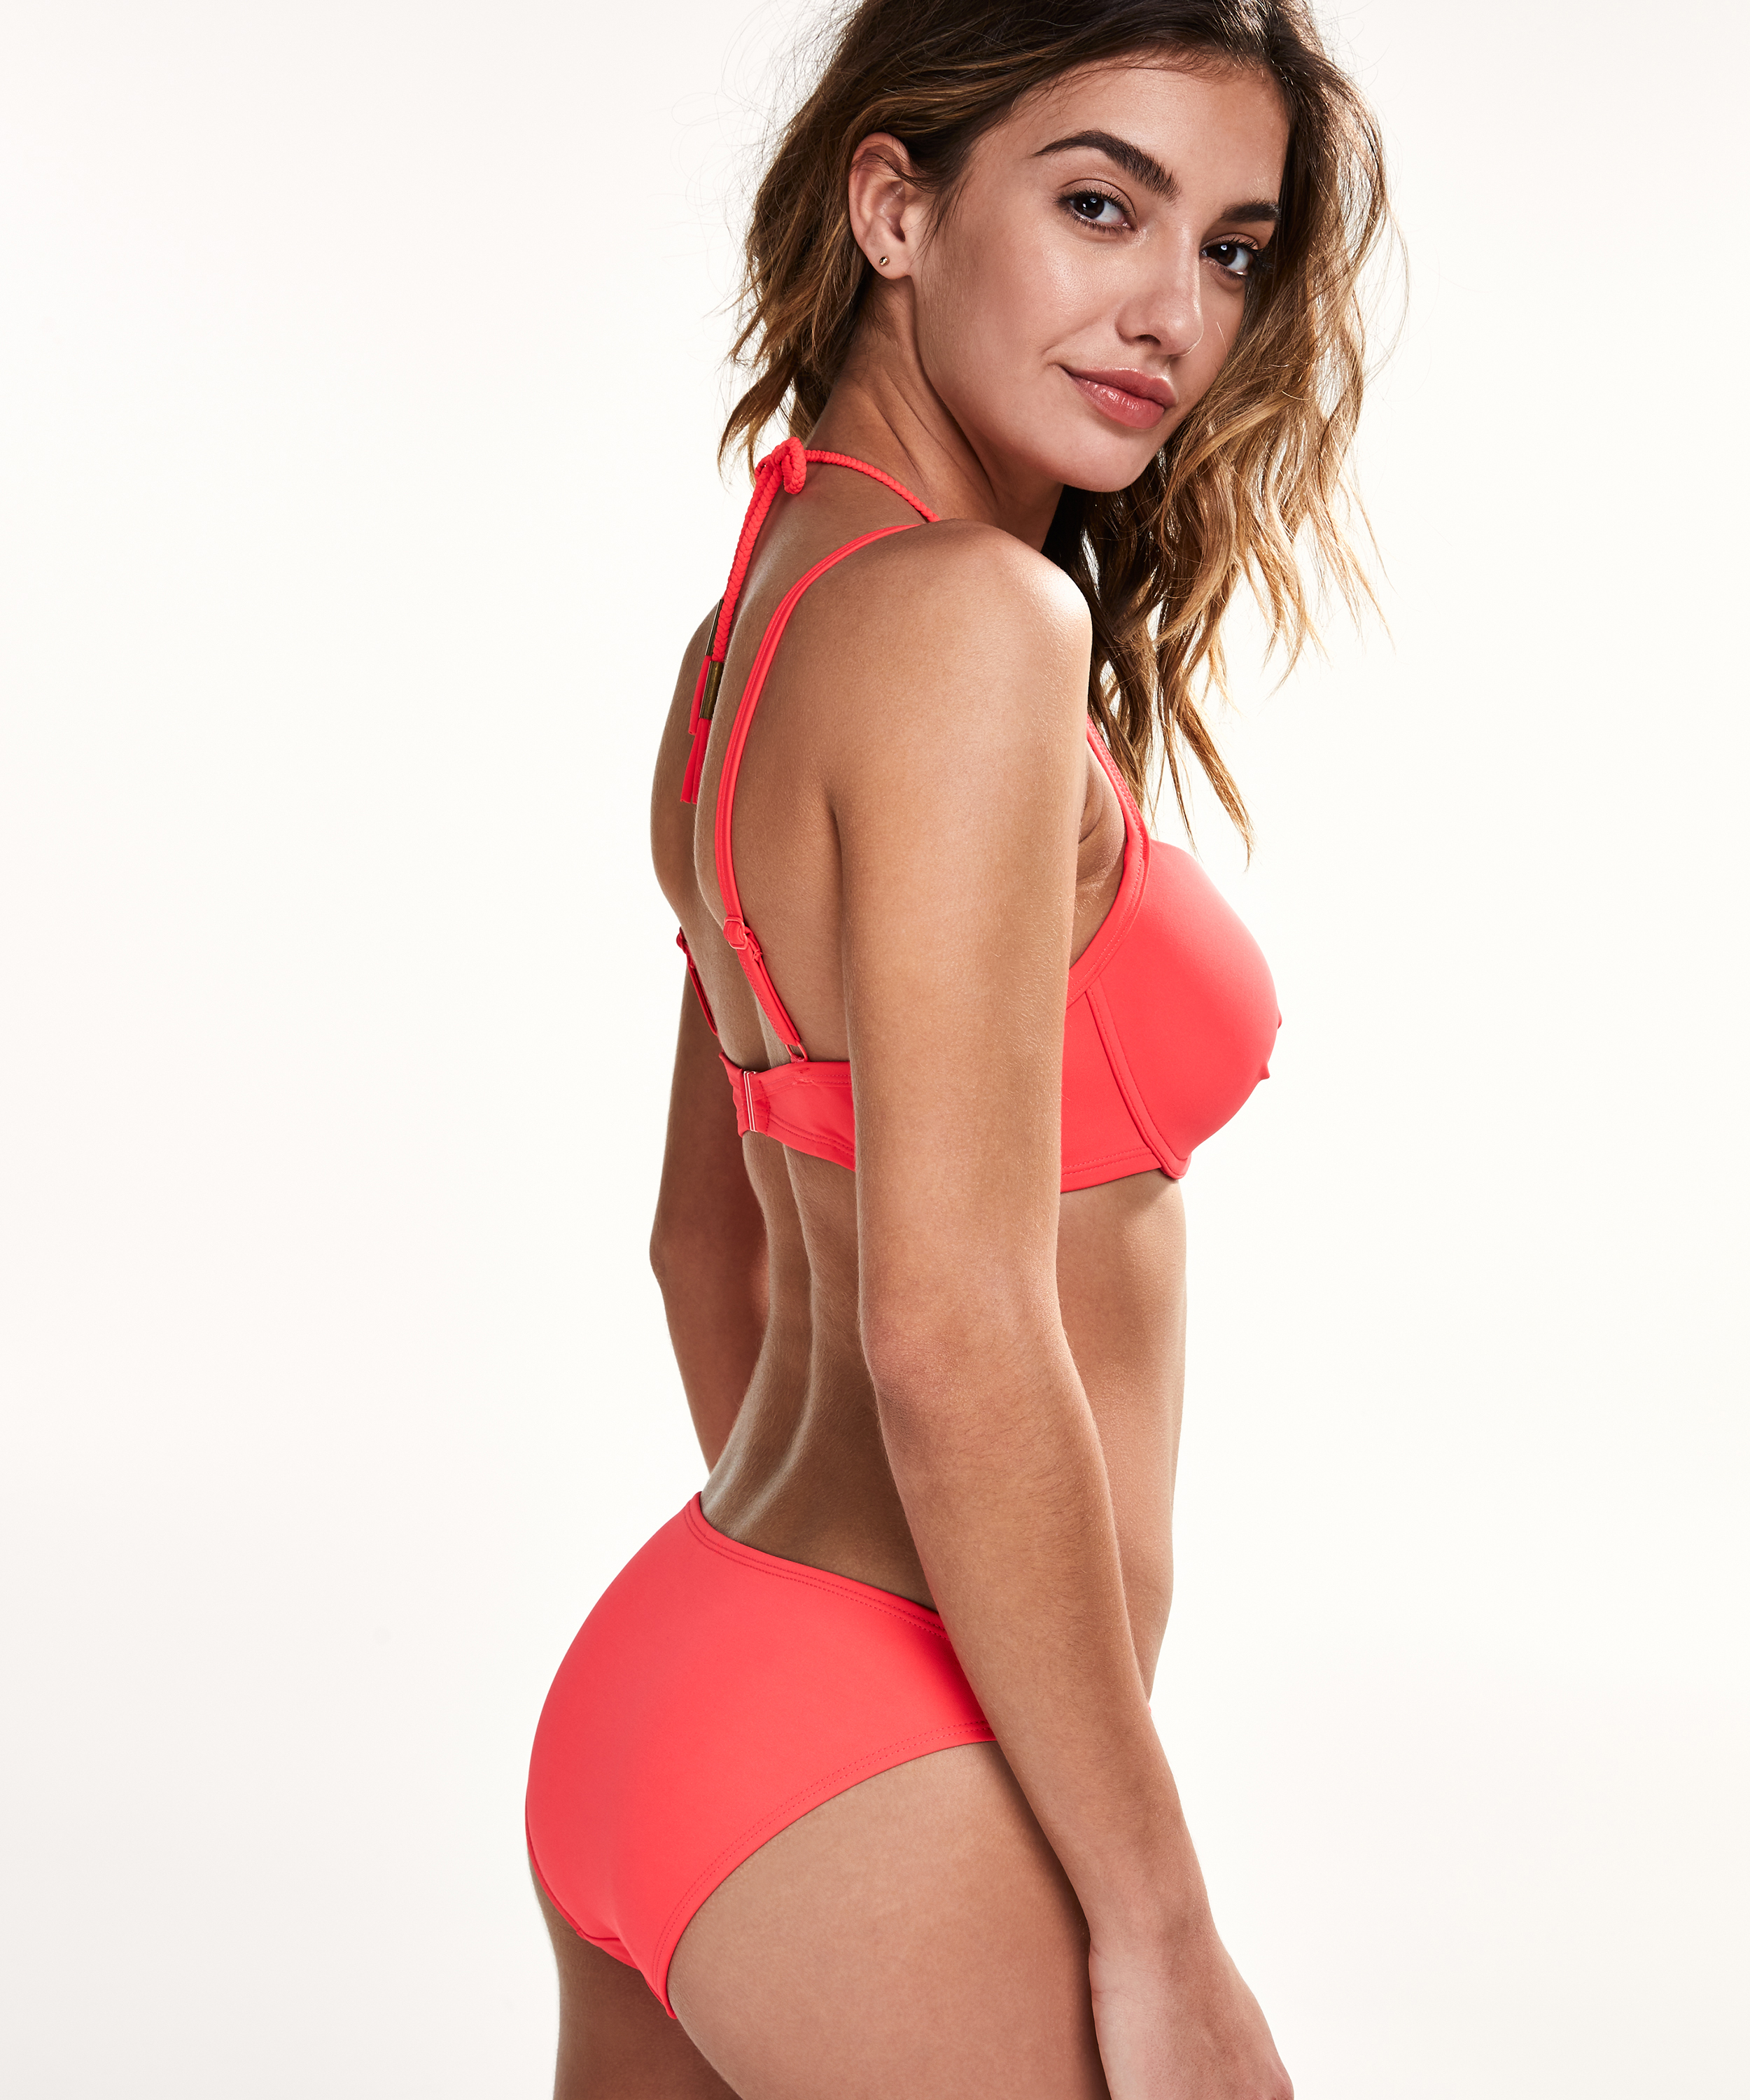 Vorgeformtes Bikinitop Sunset Dream, Rot, main